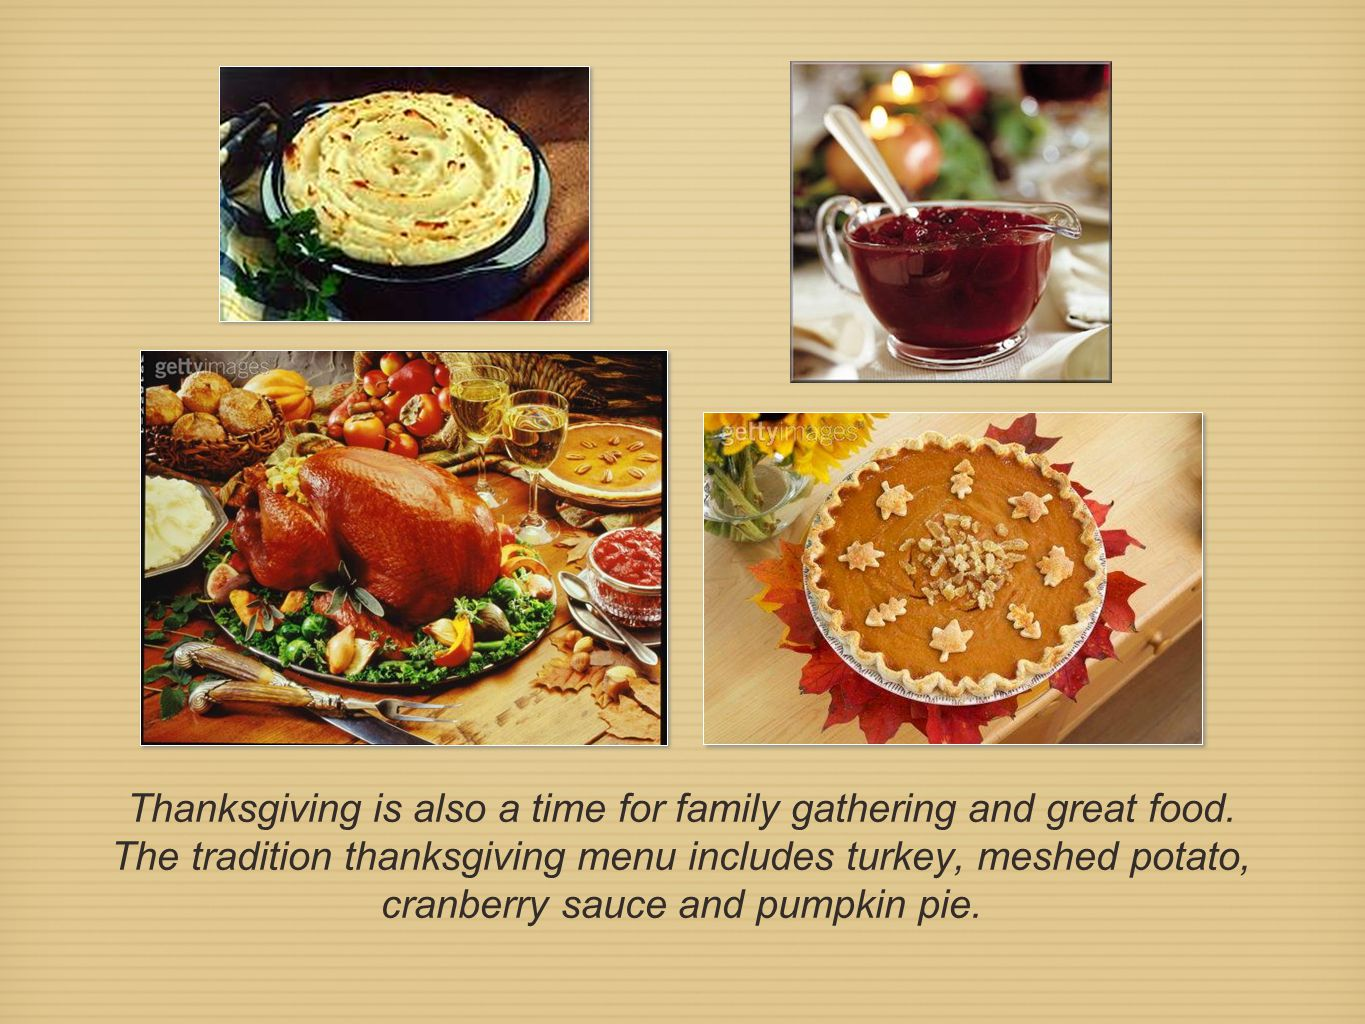 Thanksgiving is also a time for family gathering and great food. The tradition thanksgiving menu includes turkey, meshed potato, cranberry sauce and p